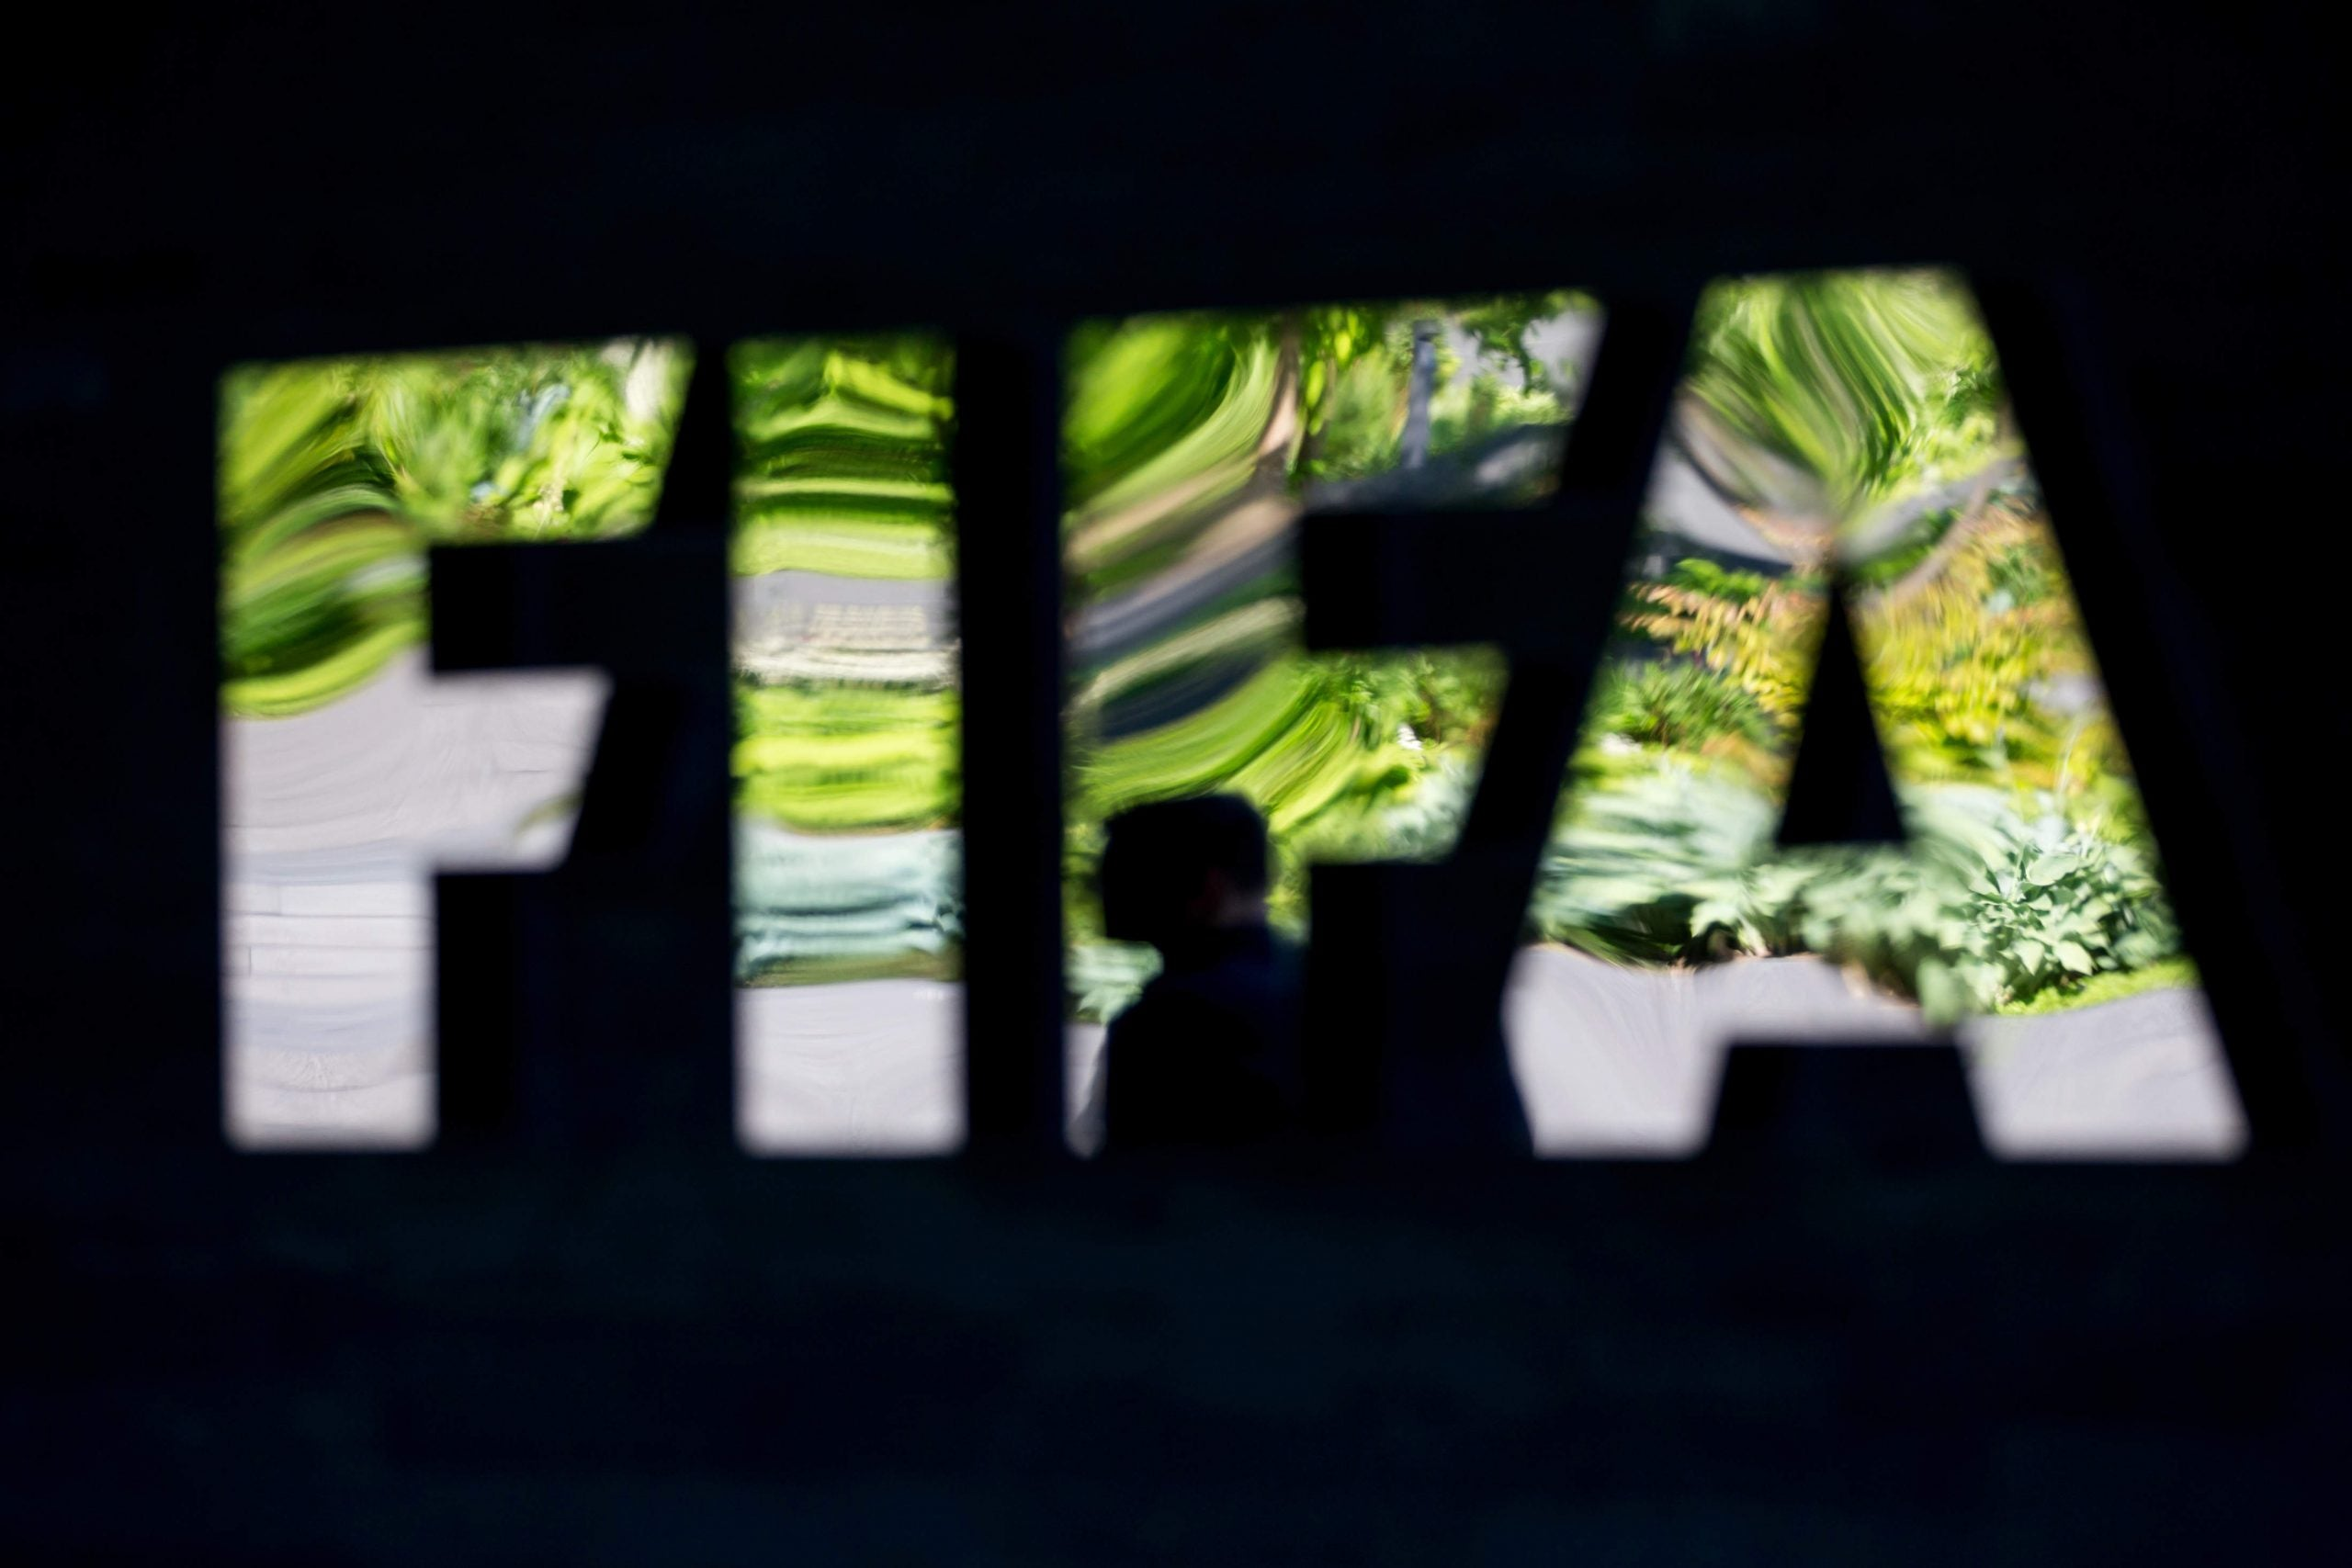 While Europe celebrates, the rest of the world will miss Blatter